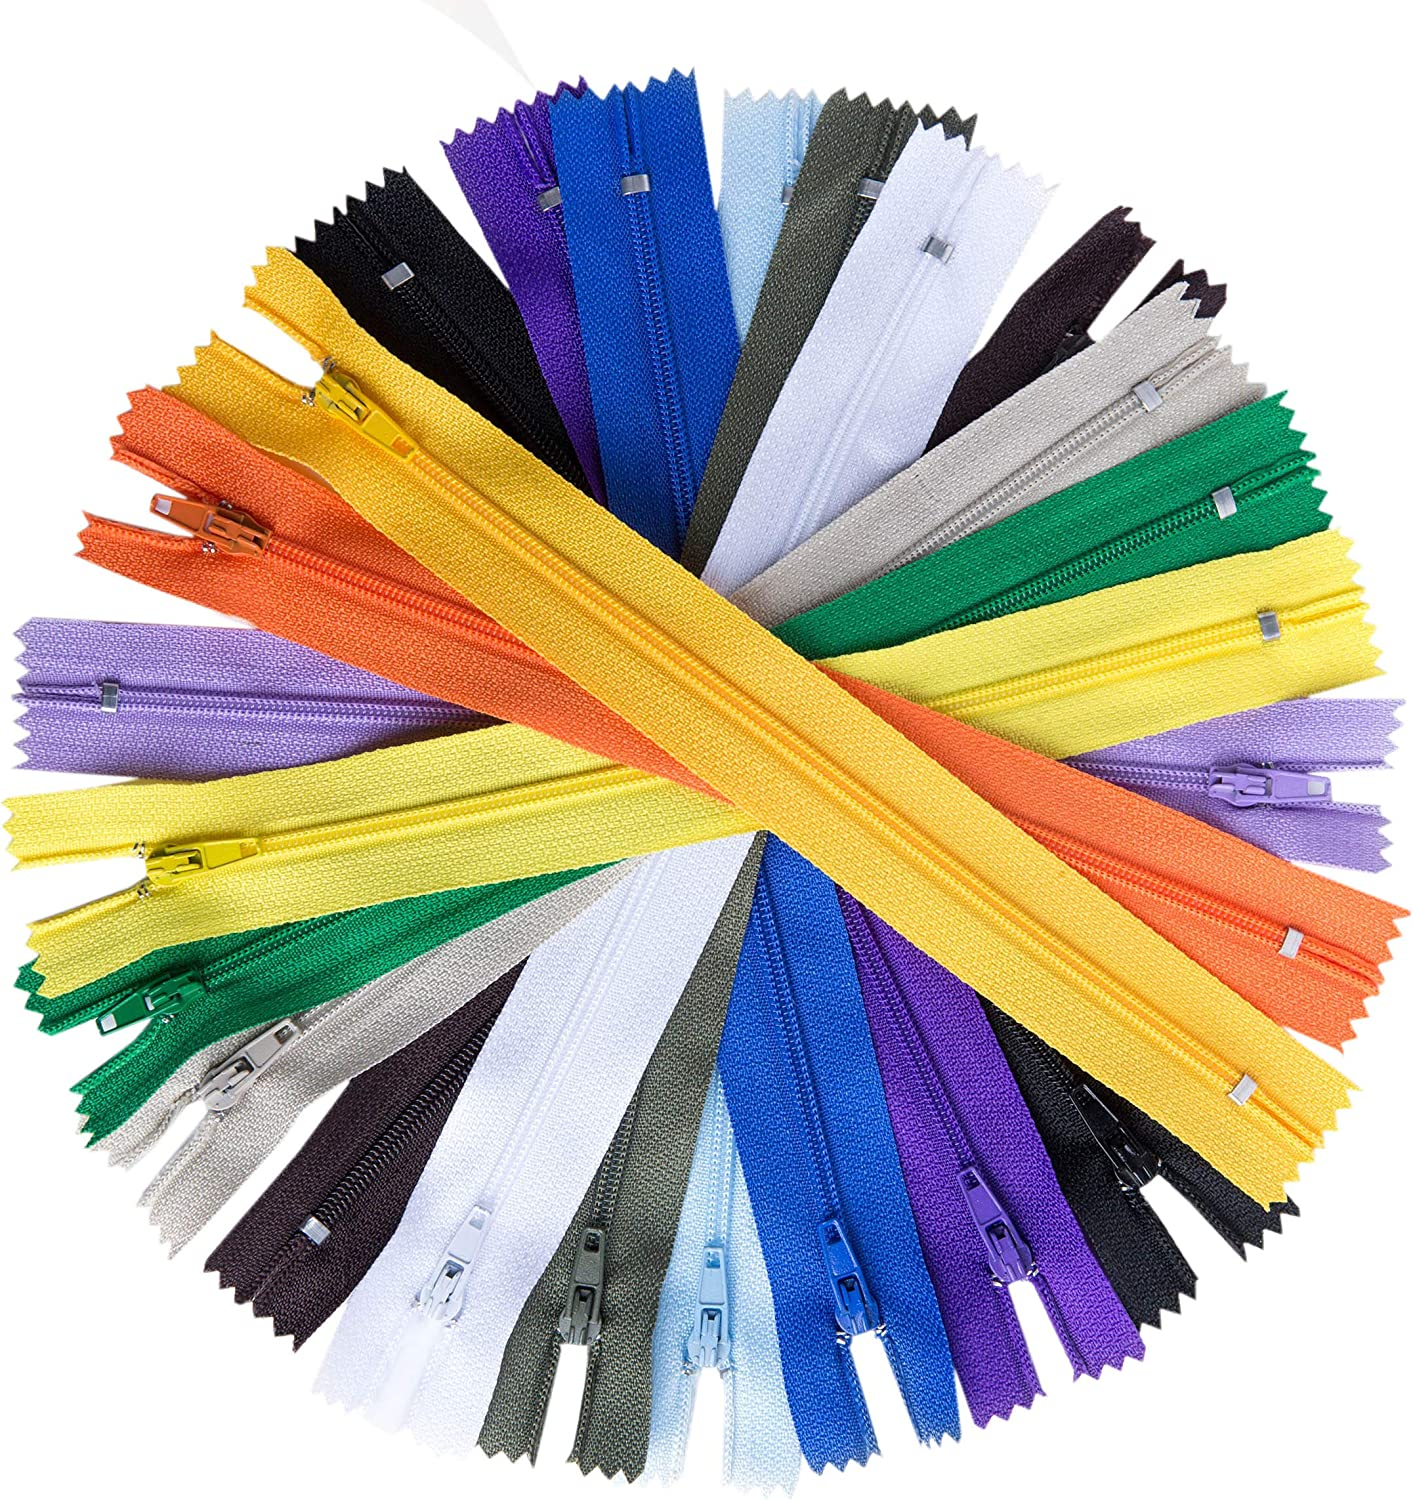 100pcs 14 Inch Nylon Coil Zippers Sewing Zippers for Sewing Crafts (Assorted Colors) 912ElFwyRTL